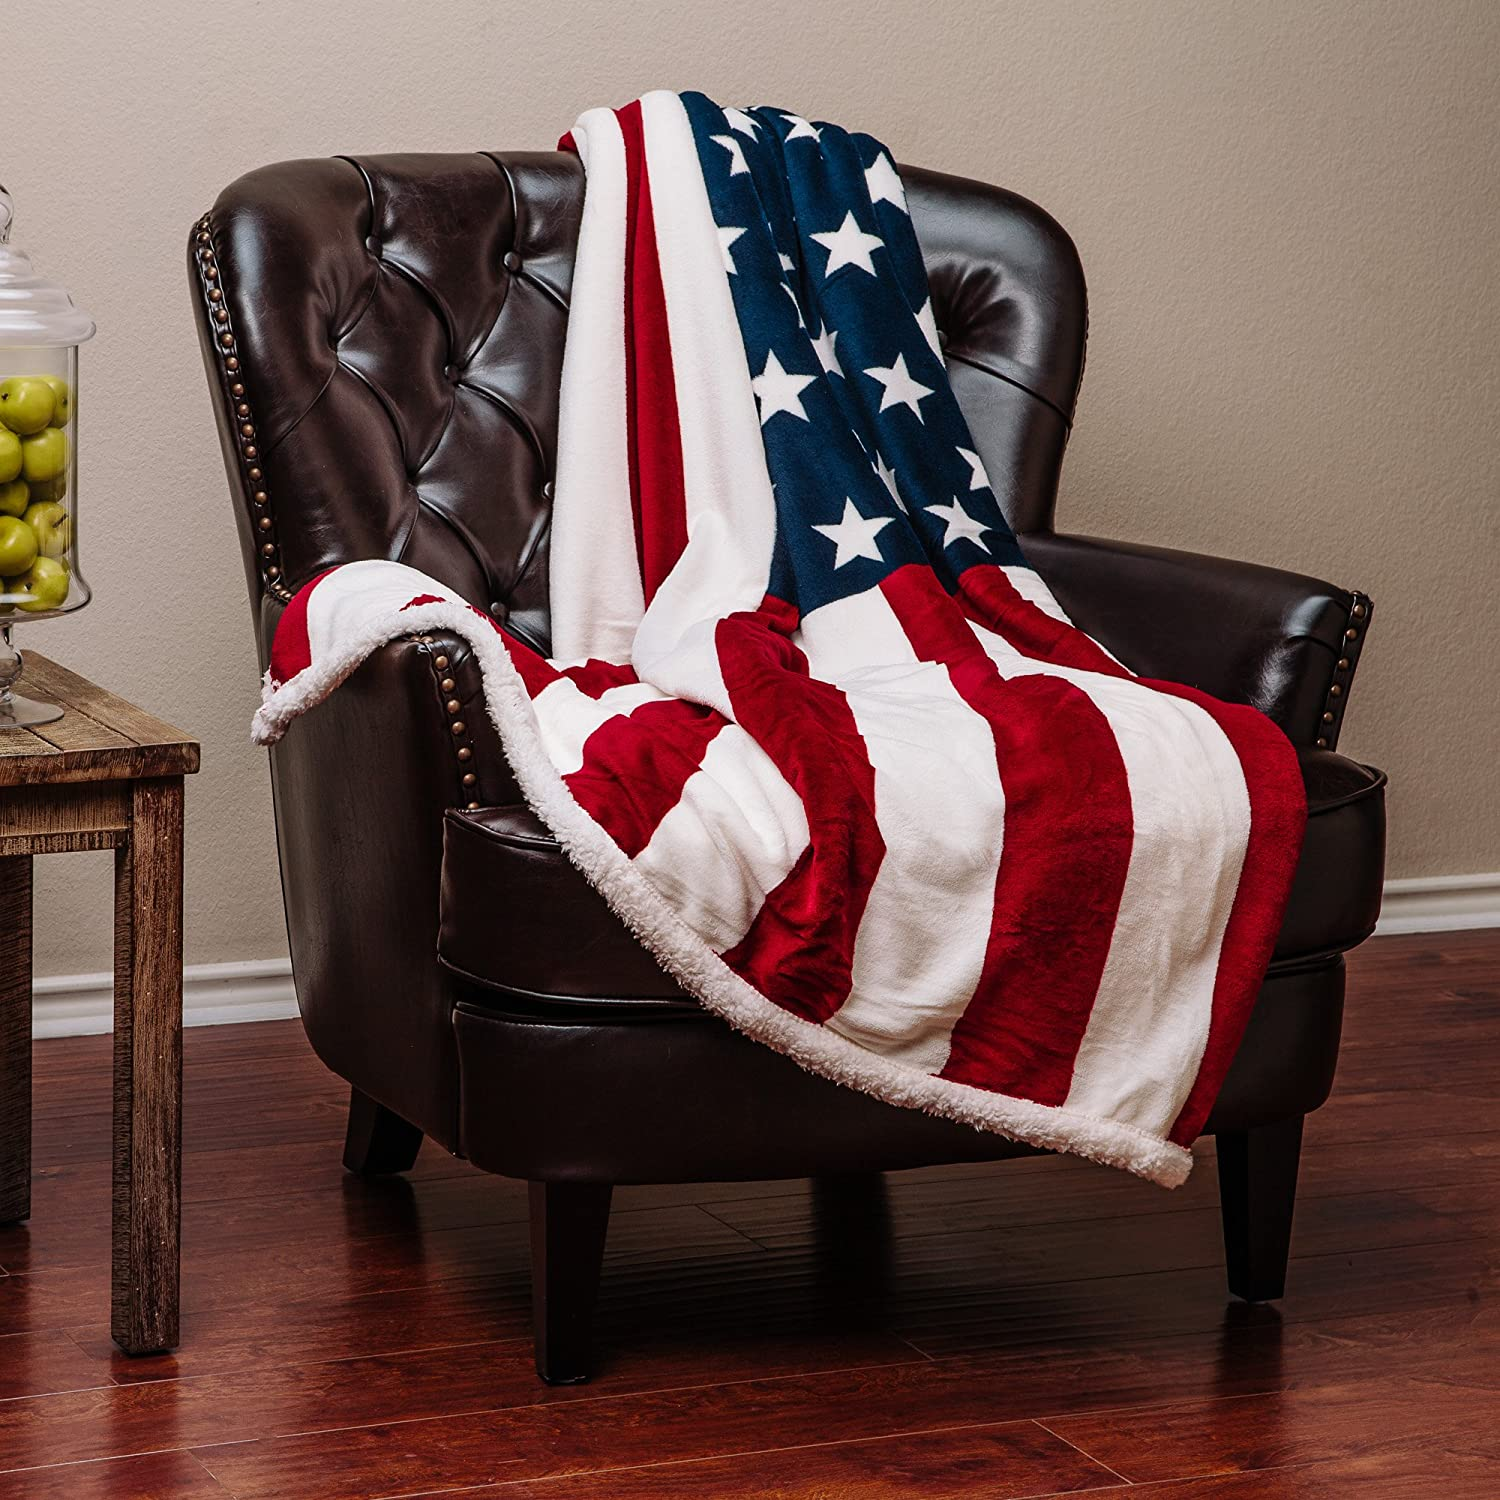 Chanasya Patriotic US Flag Print Fleece Sherpa Throw Blanket - Super Soft Ultra Plush Lightweight Microfiber Cozy Warm for Couch Bed Chair Office Sofa - Great Gift for Men Women House - 50 x 60 Inches